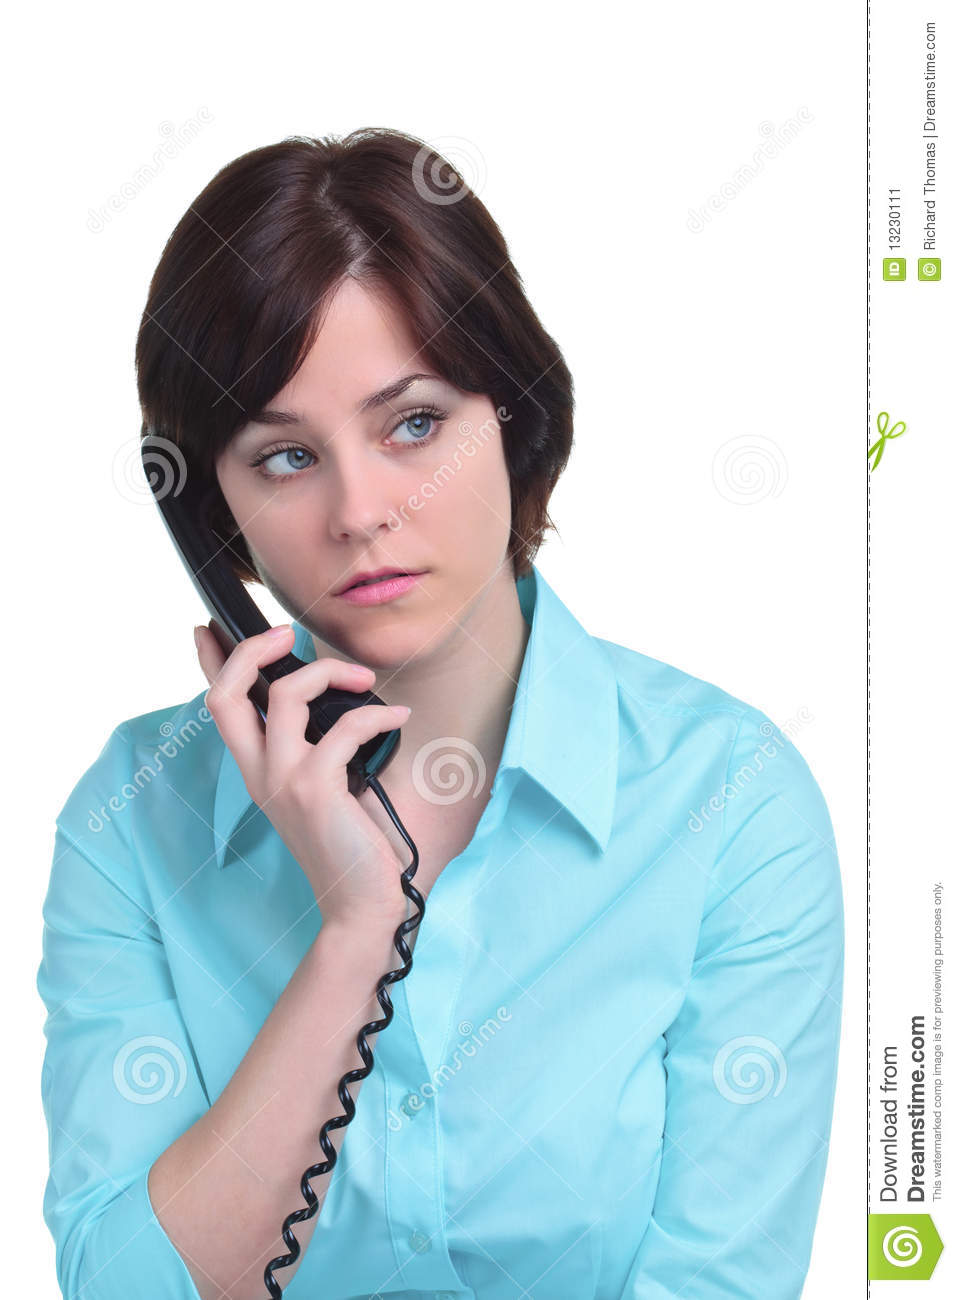 Woman on the telephone isolated on white